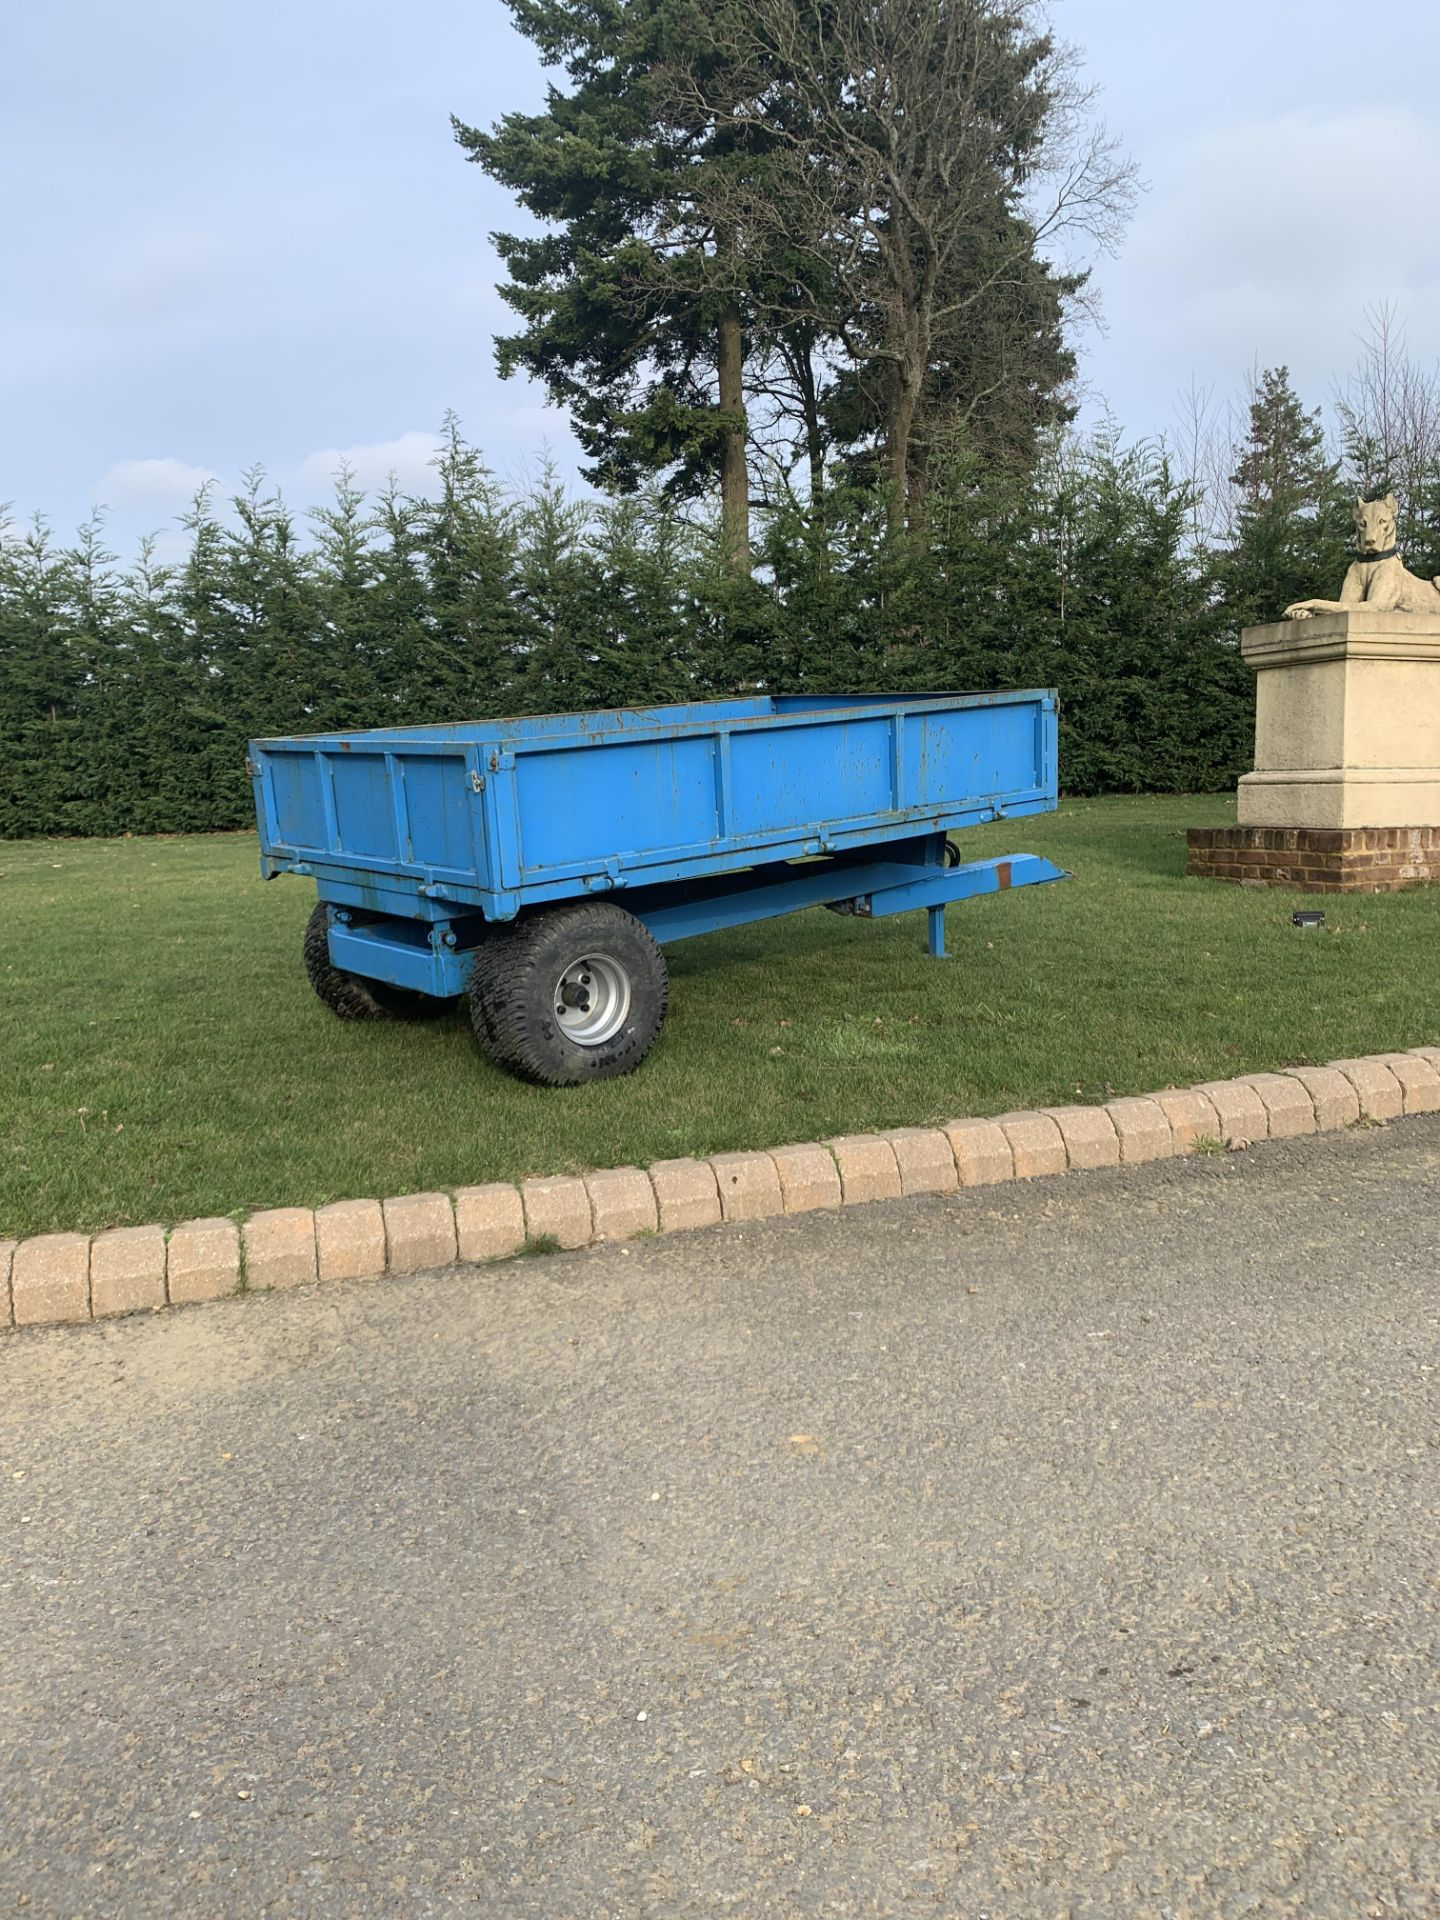 Lot 29 - BLUE STEEL FRAME SINGLE AXLE TRAILER, 3 METERS LONG 1.6 METERS WIDE, GOOD SOLID CONDITION *PLUS VAT*